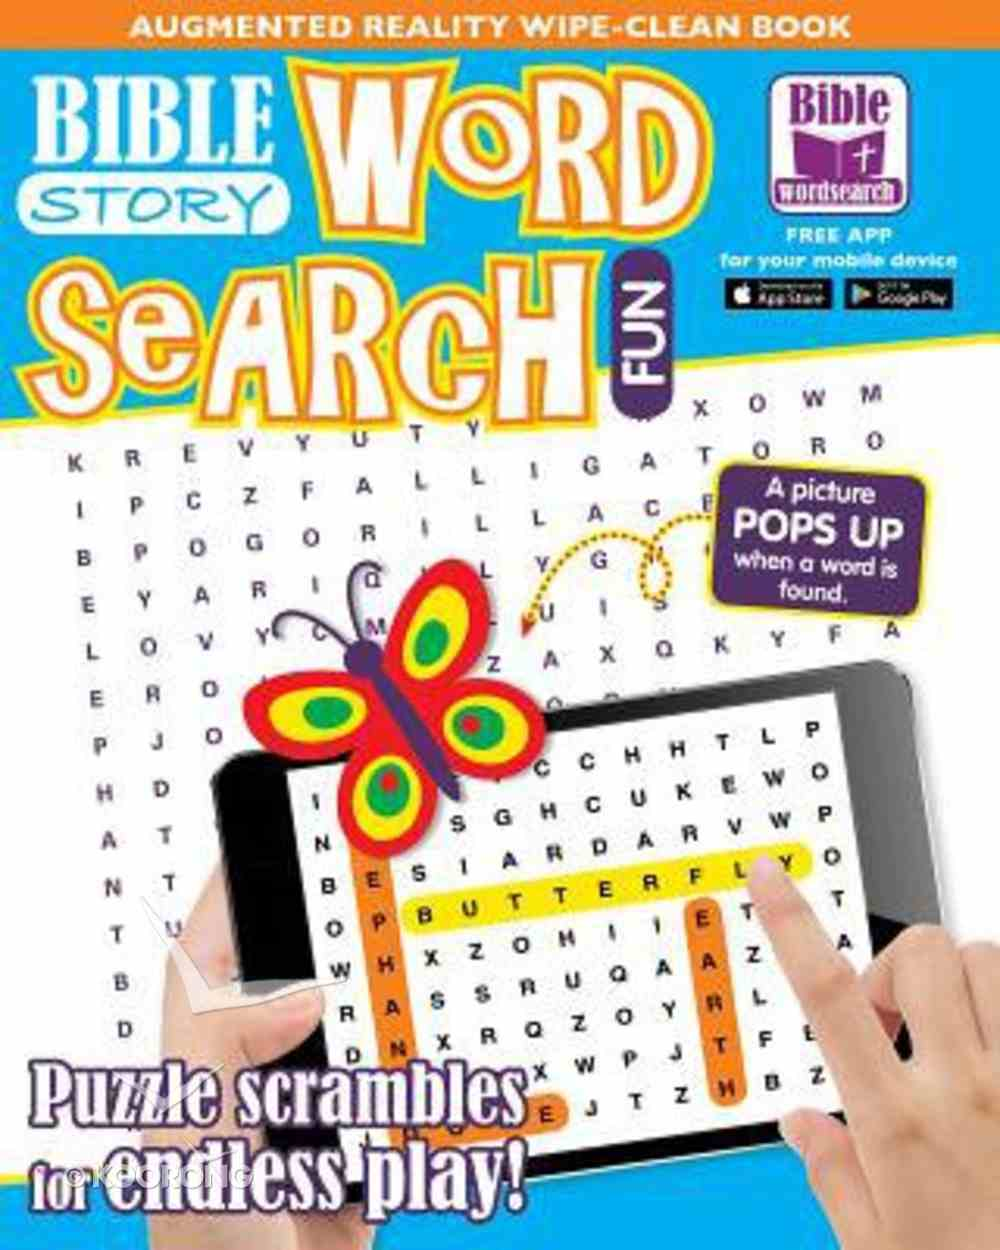 Bible Story Word Search Fun: An Augmented Reality Wipe-Clean Book Paperback